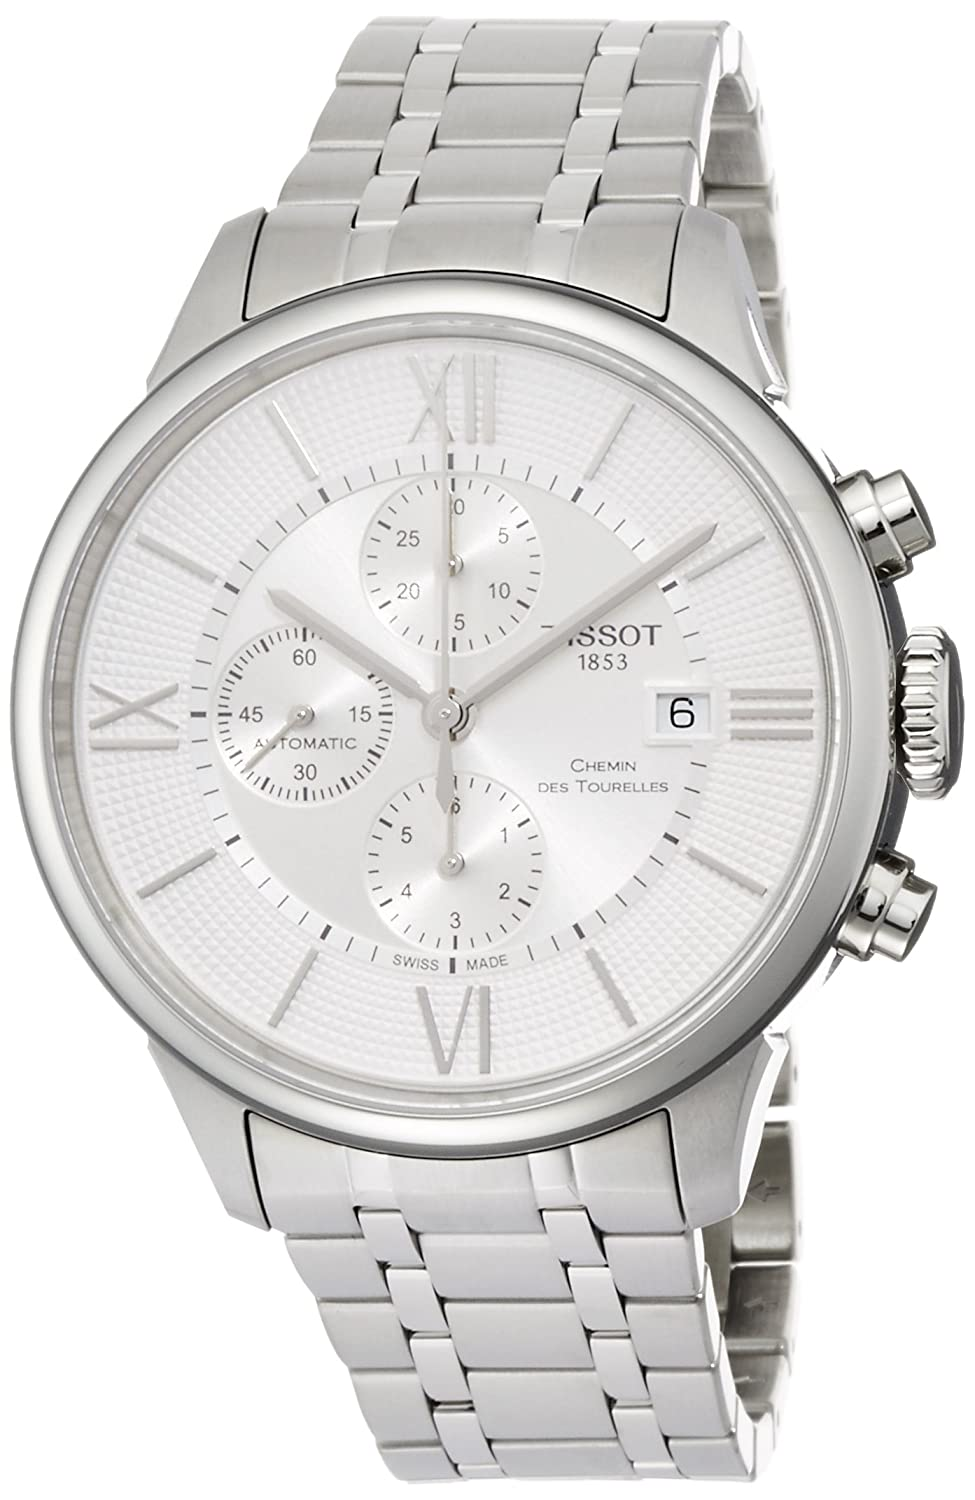 Tissot Men s T-Classic Swiss-Automatic Watch with Stainless-Steel Strap, Silver, 21 Model T0994271103800